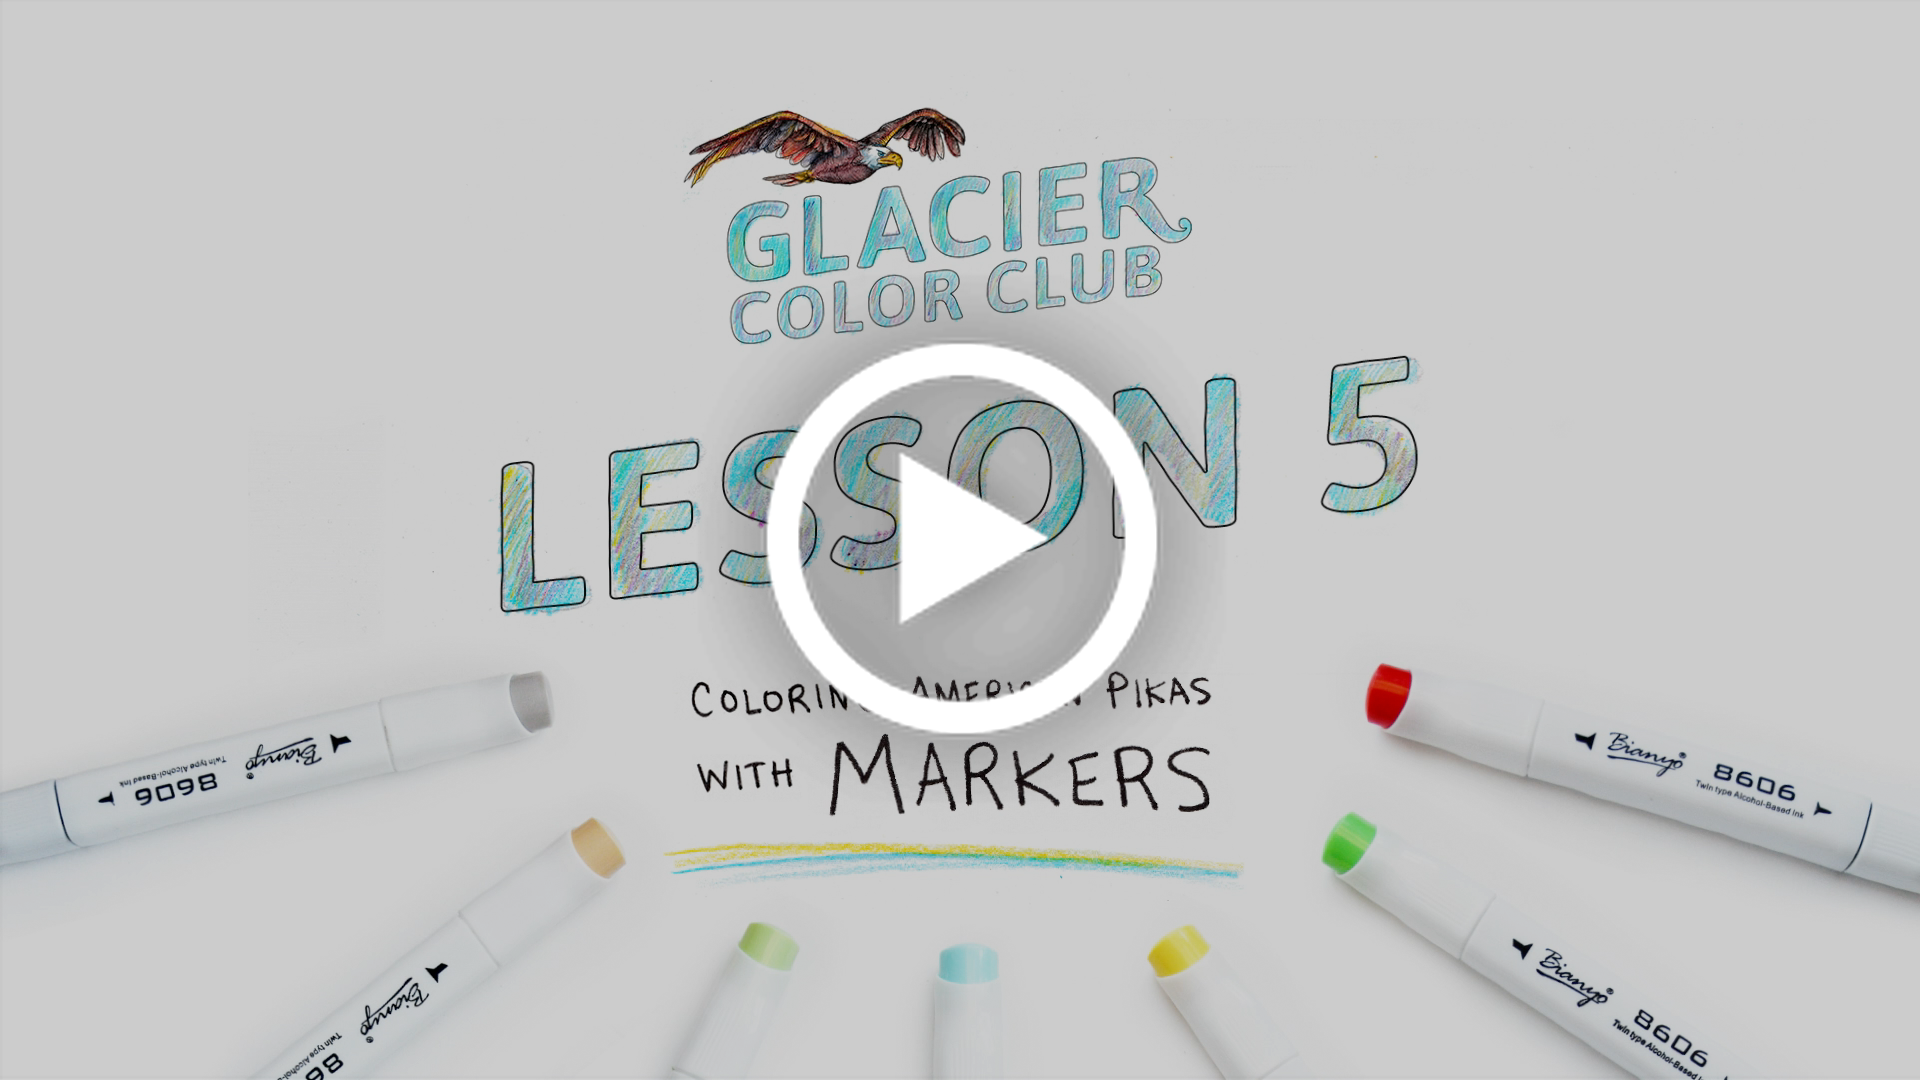 A still image of Glacier Color Club Lesson 5, featuring a coloring tutorial using markers